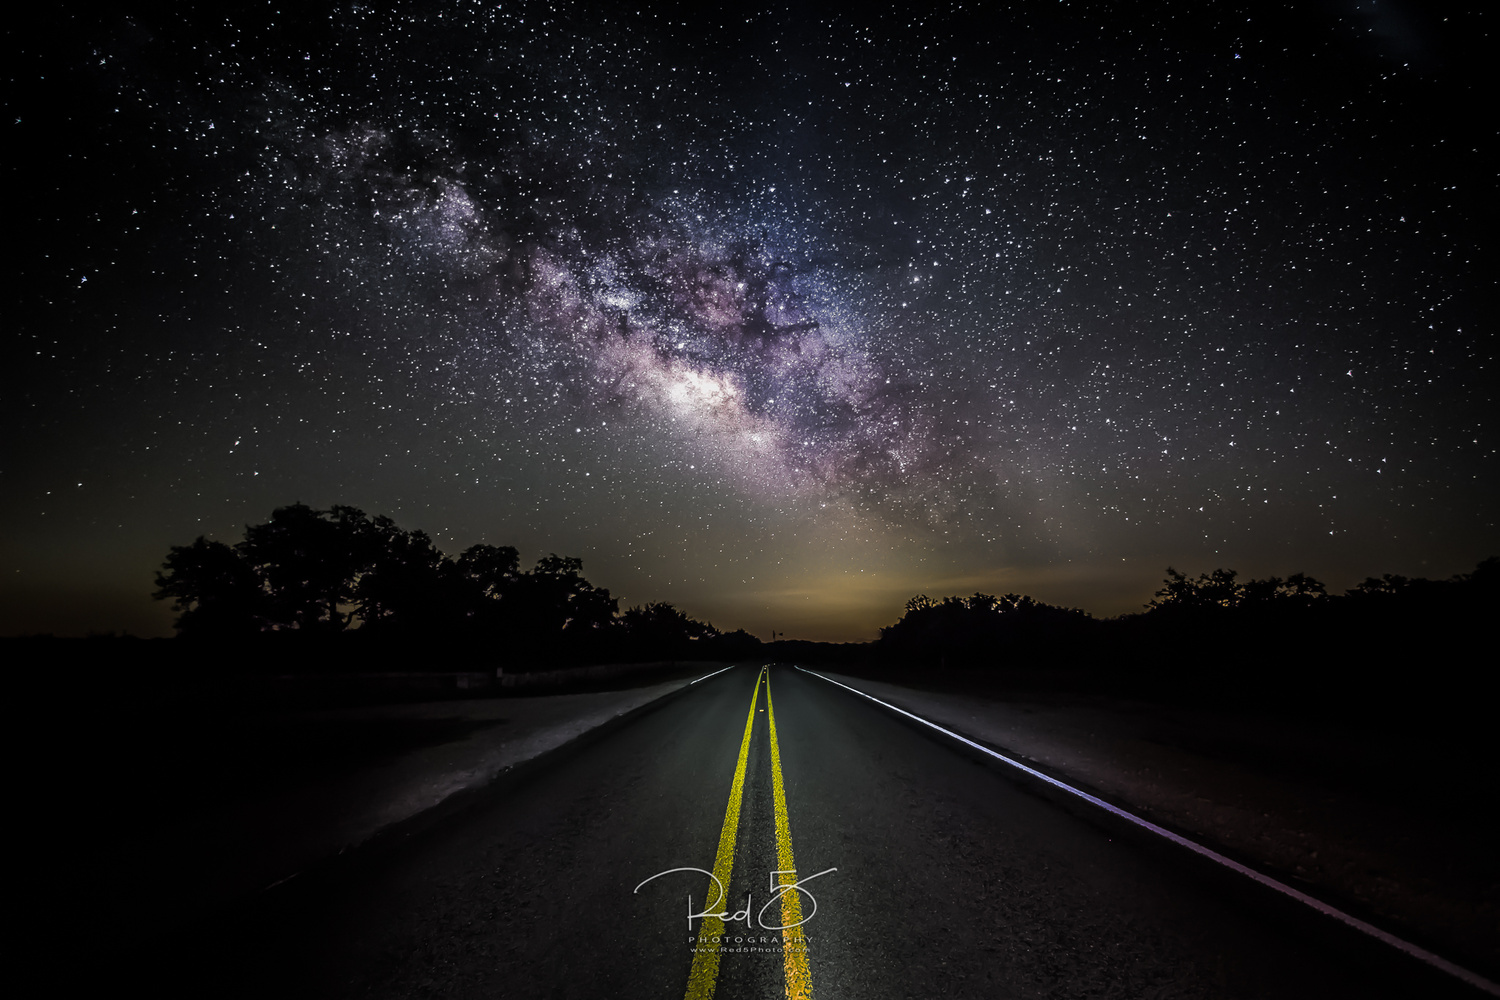 Milky Road by Jason Squyres